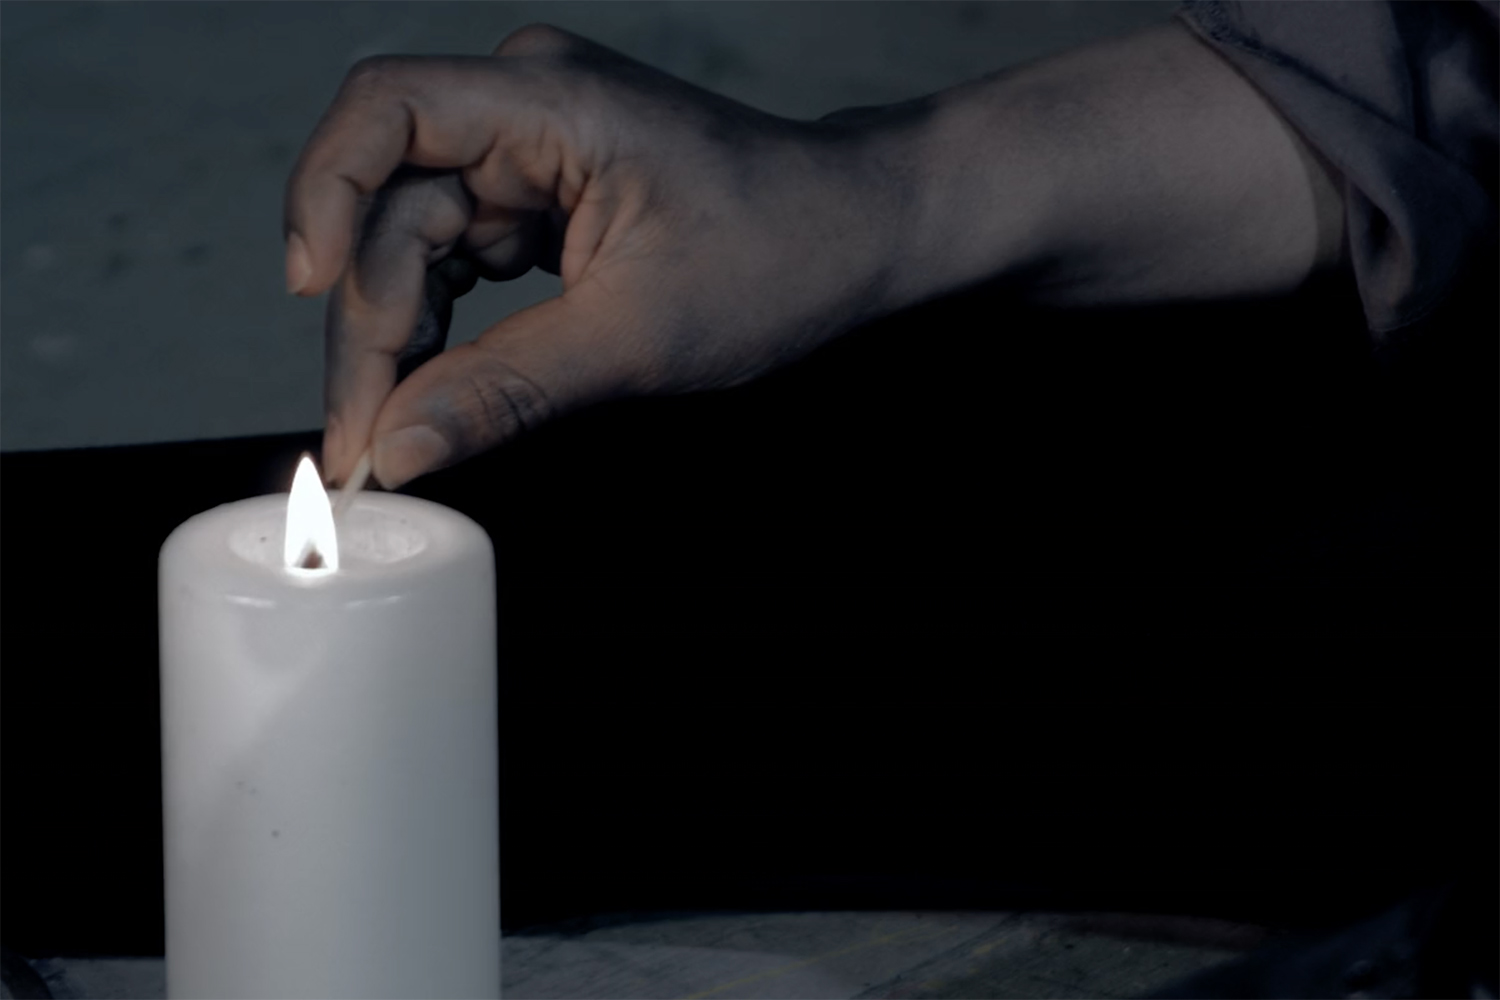 phoebe_nightingale_stay_the_burning_short_film_experimental_ronke_adekoluejo_lighting_candle.jpg